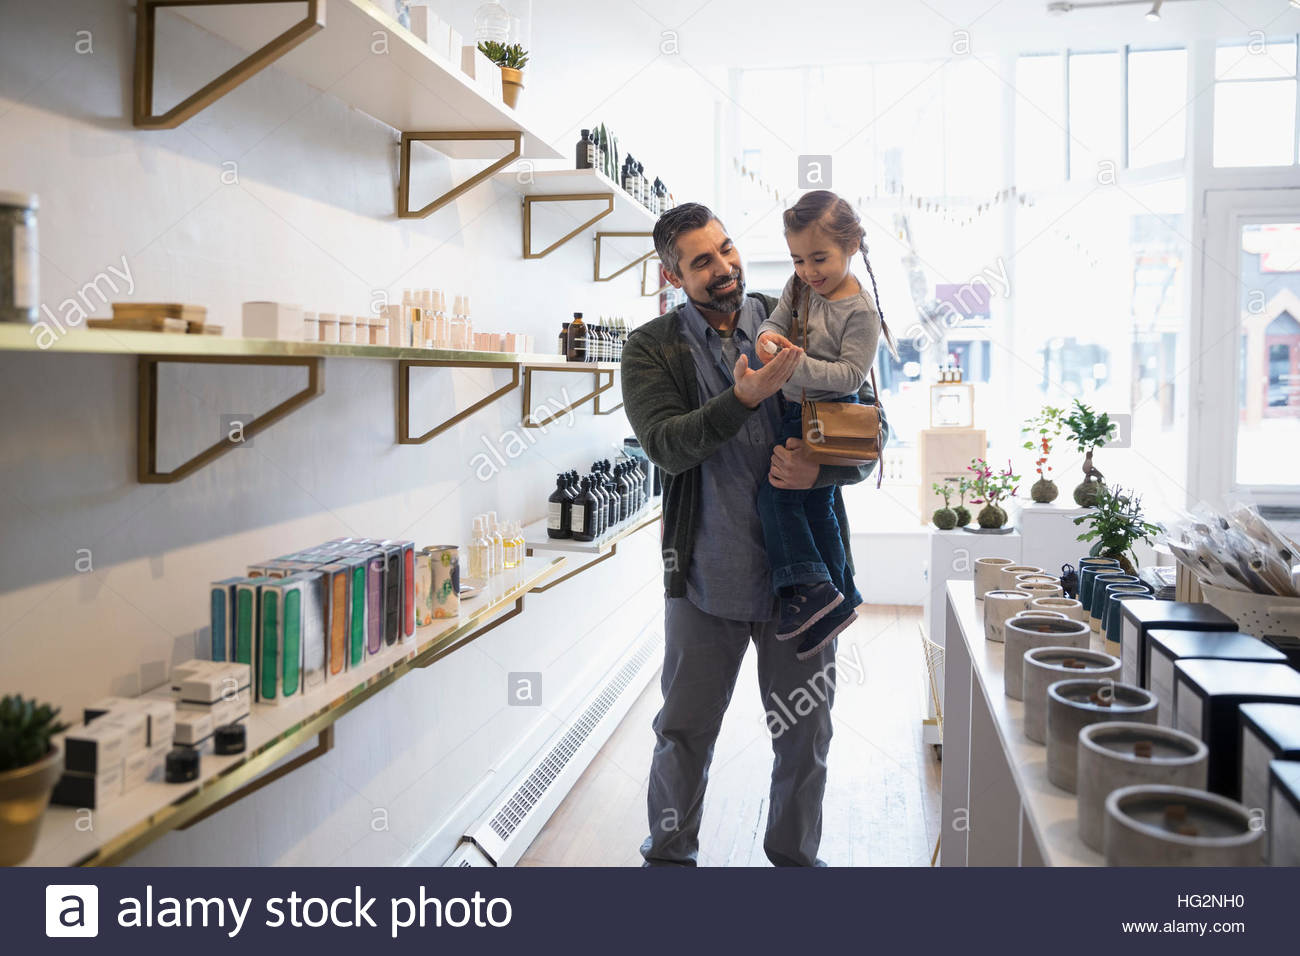 Father and daughter shopping browsing home fragrances in shop - Stock Image